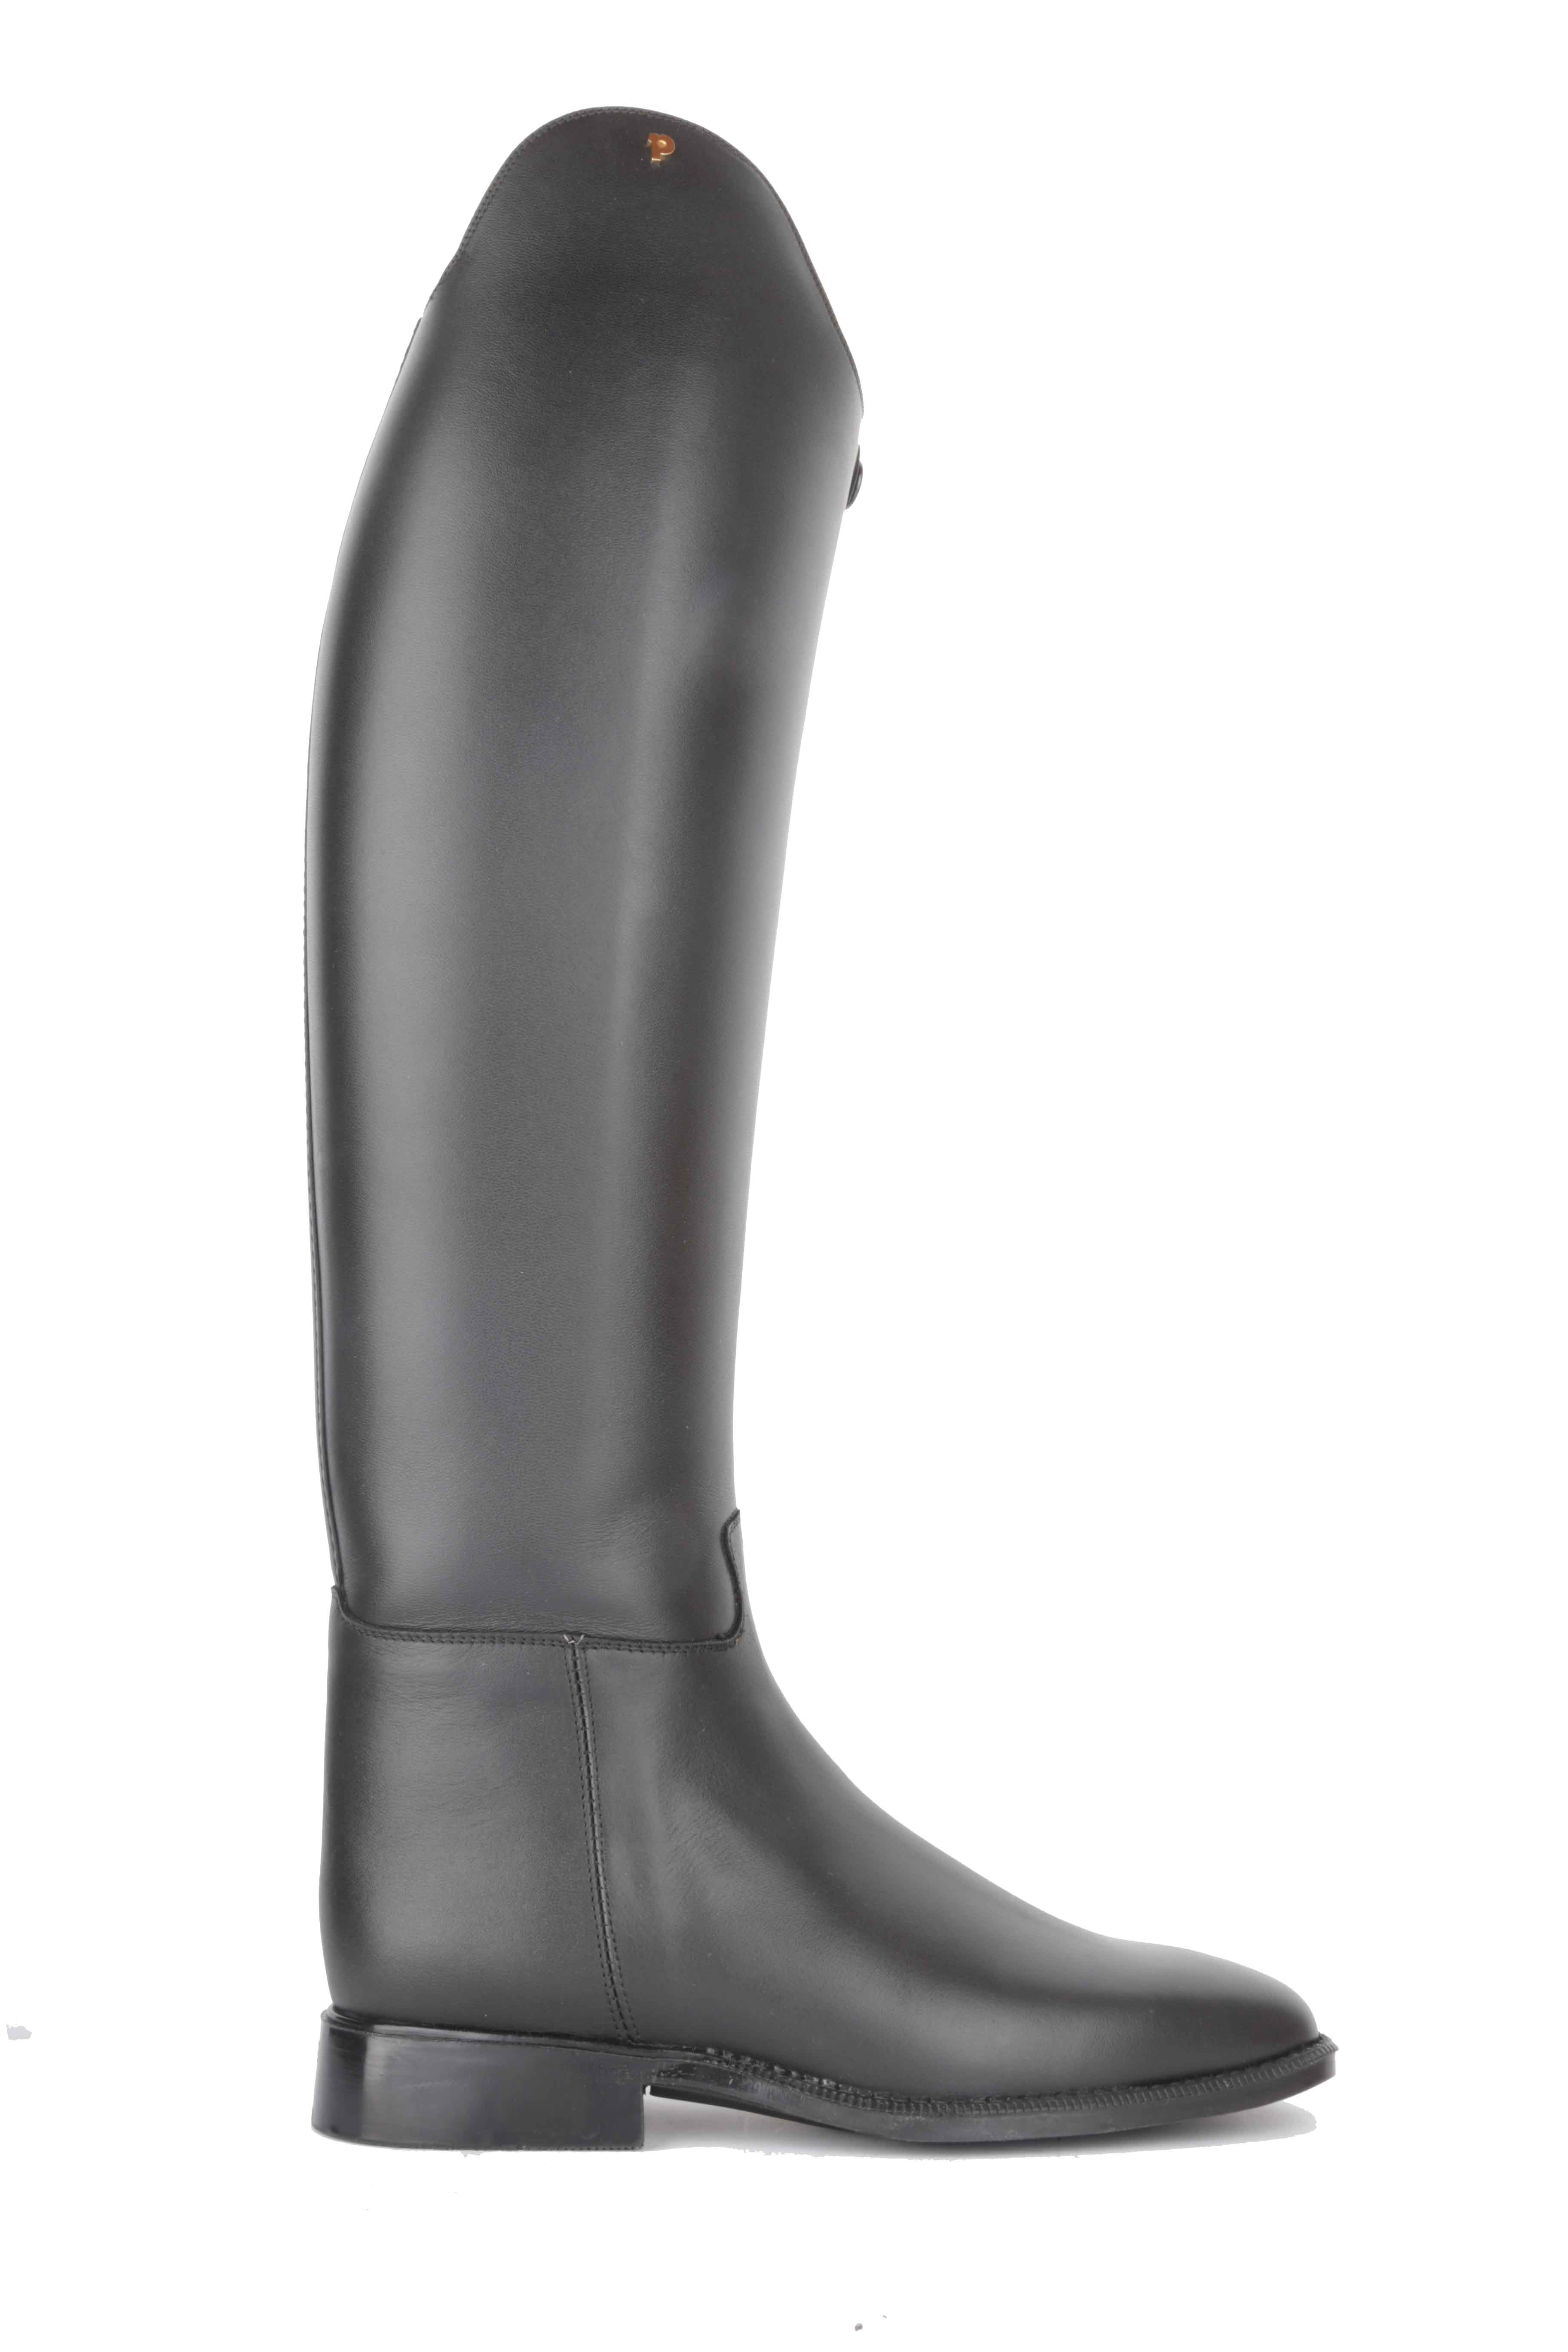 Petrie Olympic Dressage Boots 41 35 Ridingboot Shop